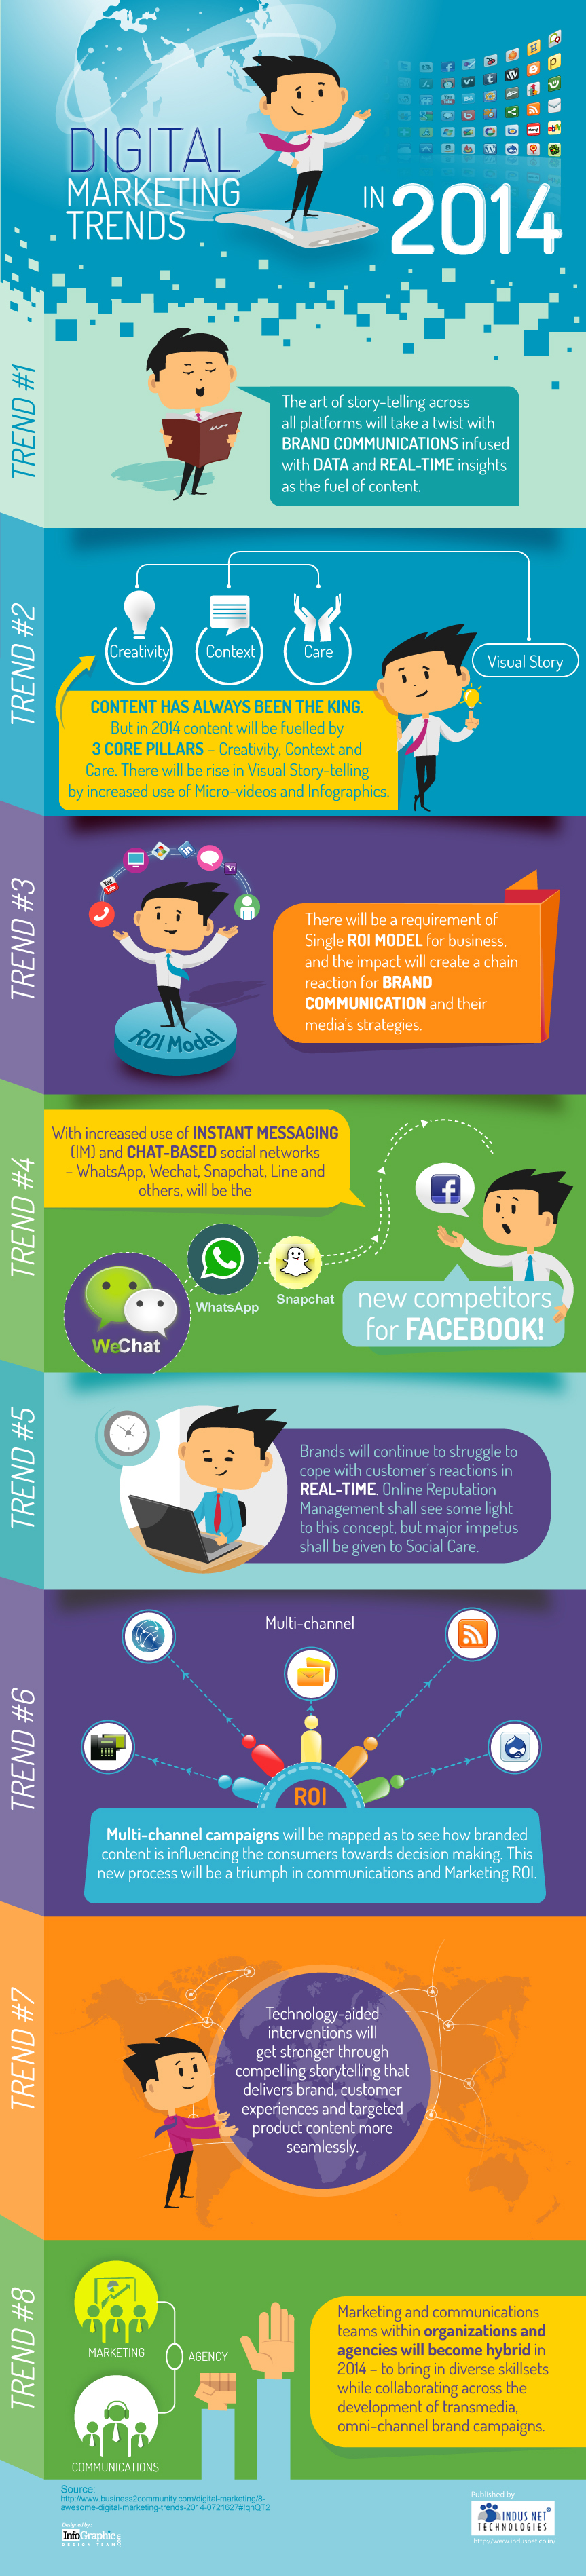 Discovery of Digital Marketing Trends - 2014